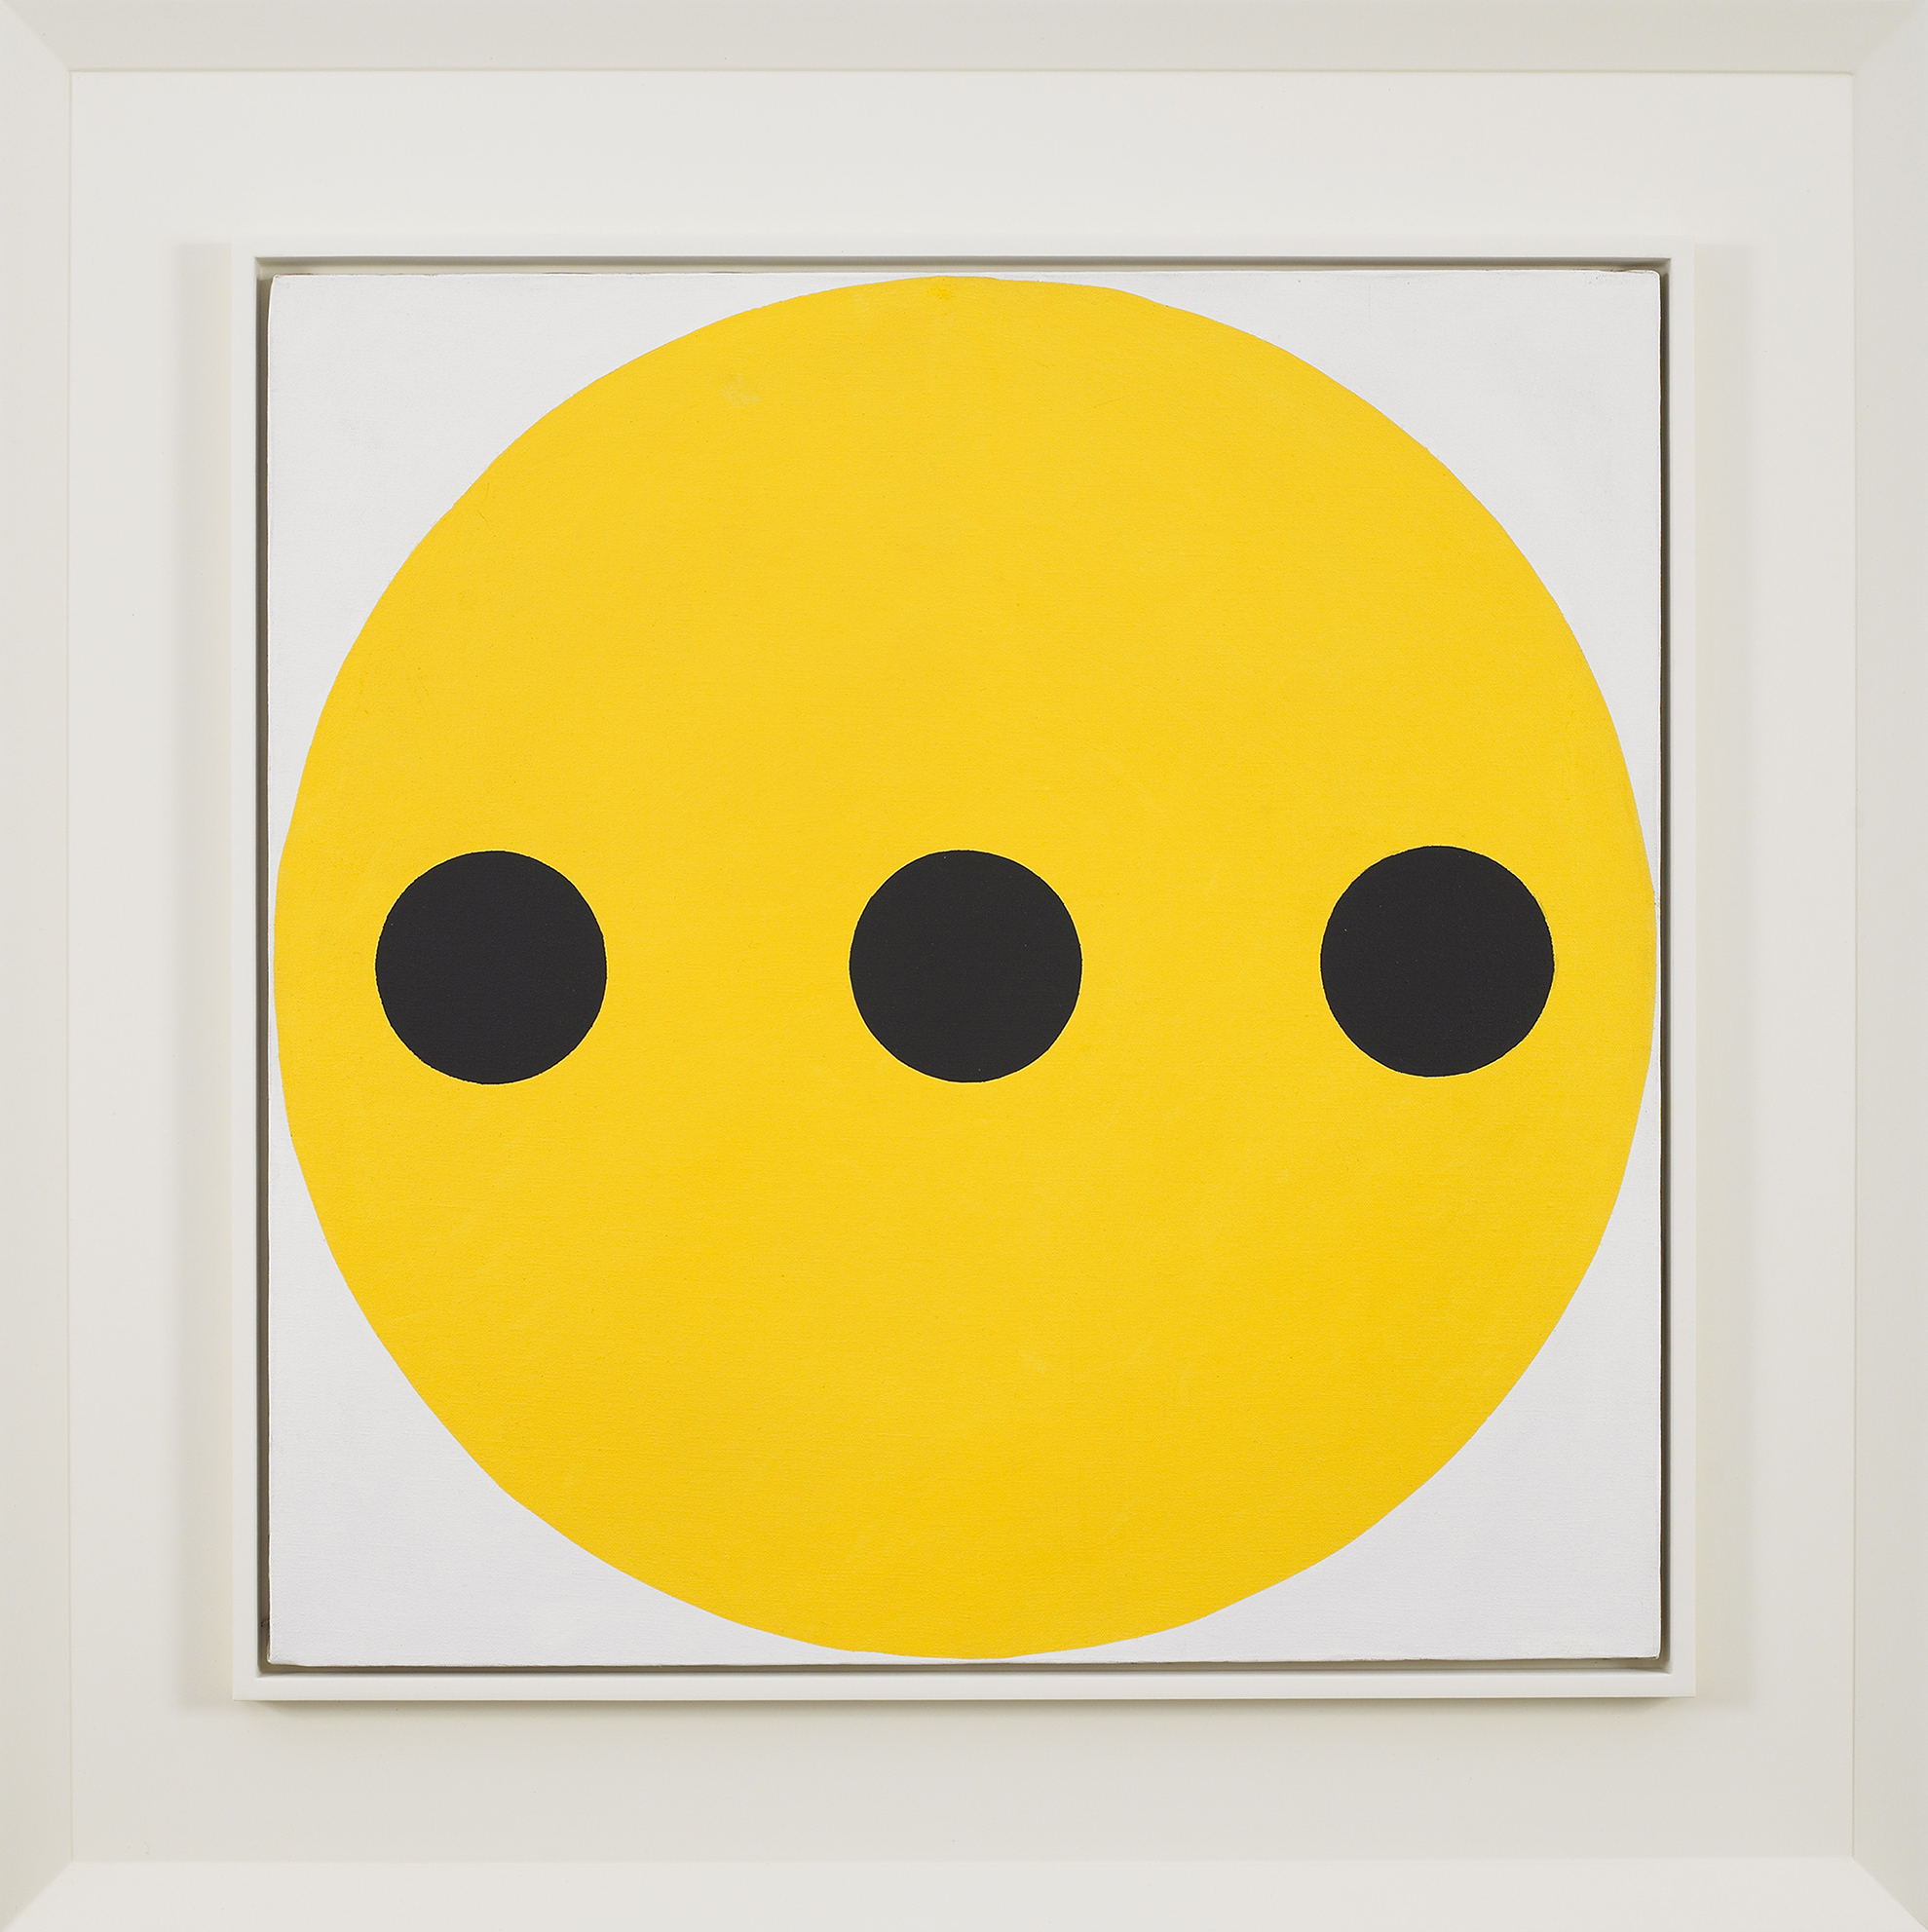 Black-Yellow,   Oil on canvas, 1962, 24 x 24 inches